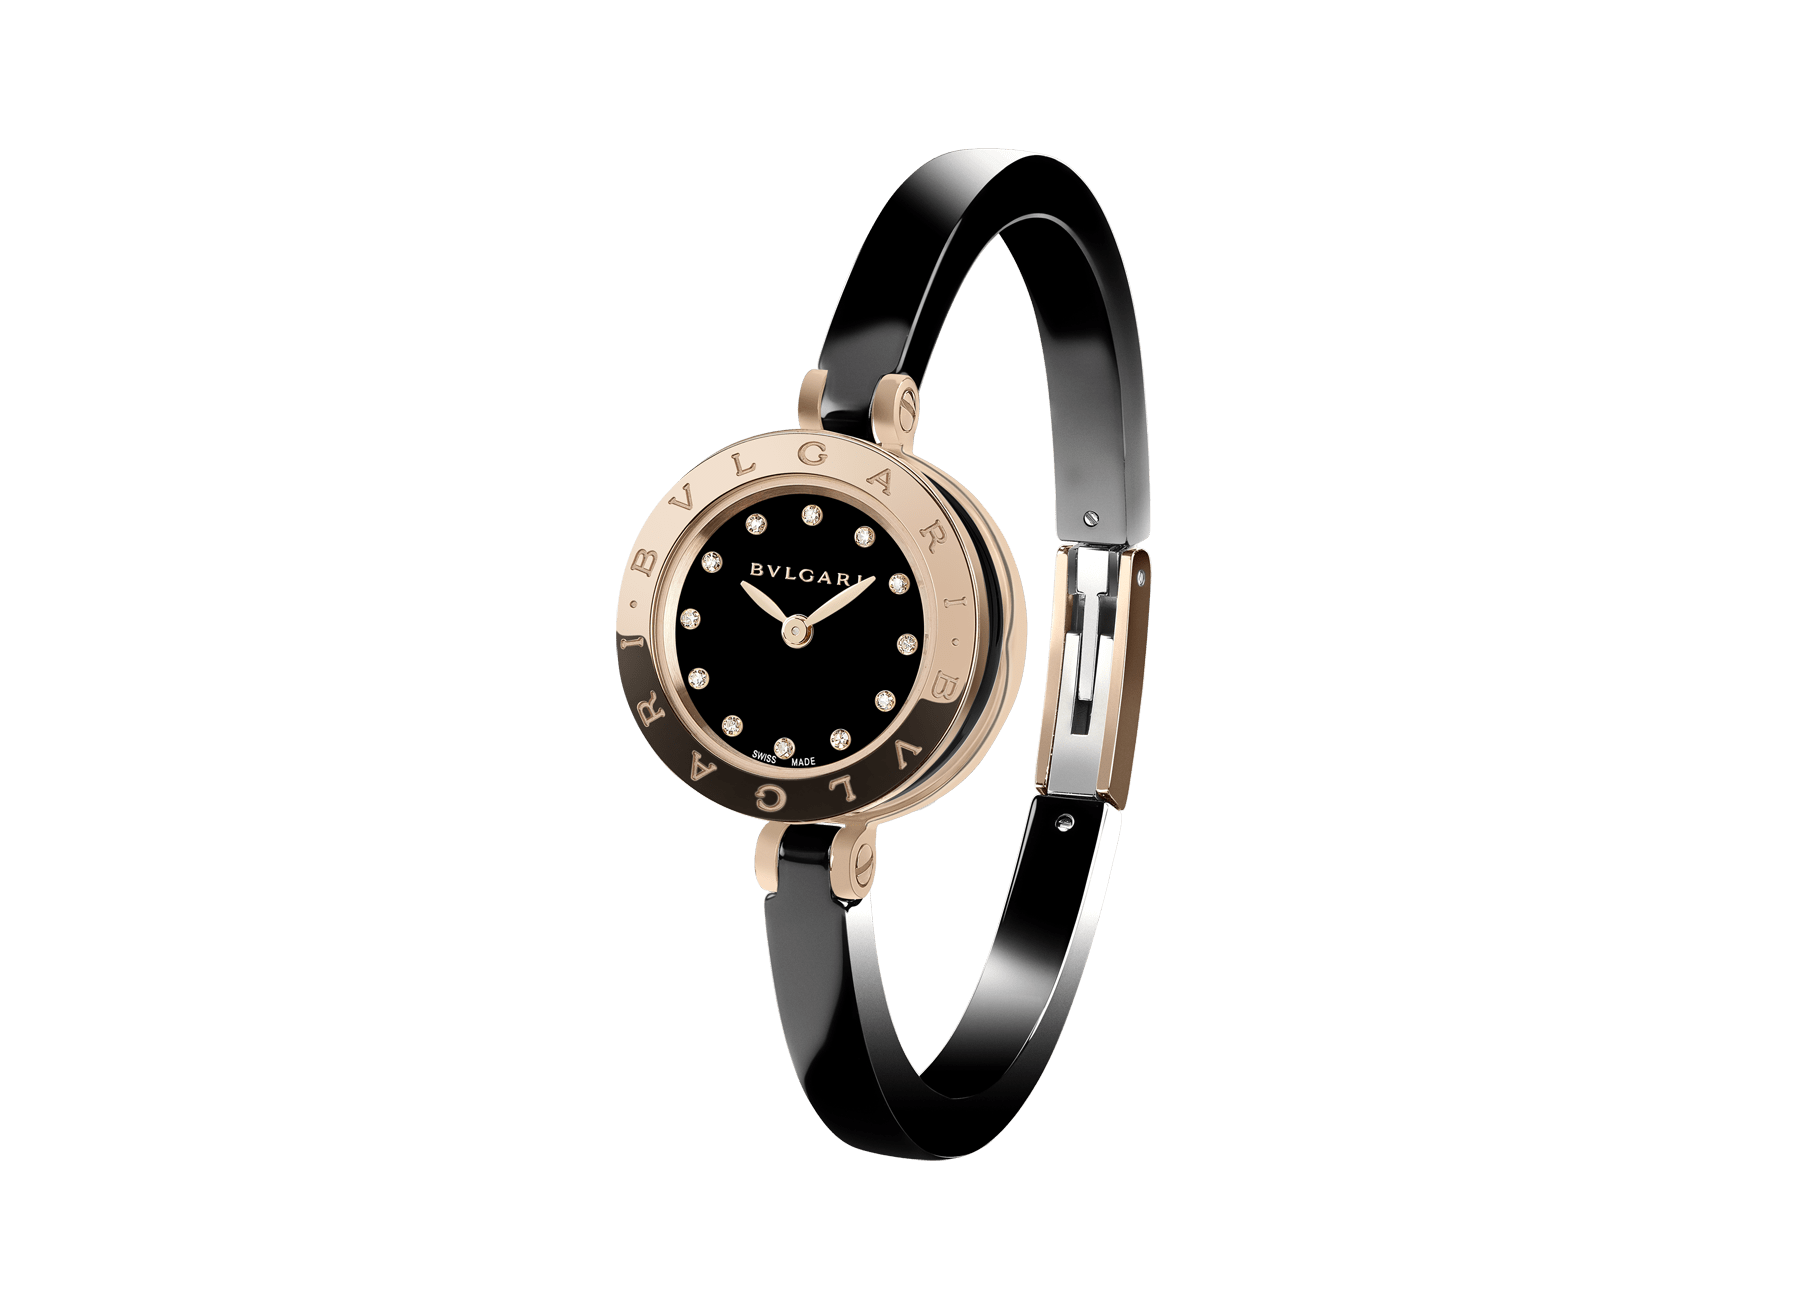 B.zero1 watch with 18 kt rose gold and black ceramic case, black lacquered dial set with diamond indexes, black ceramic bangle and 18 kt rose gold clasp. 102175 image 1